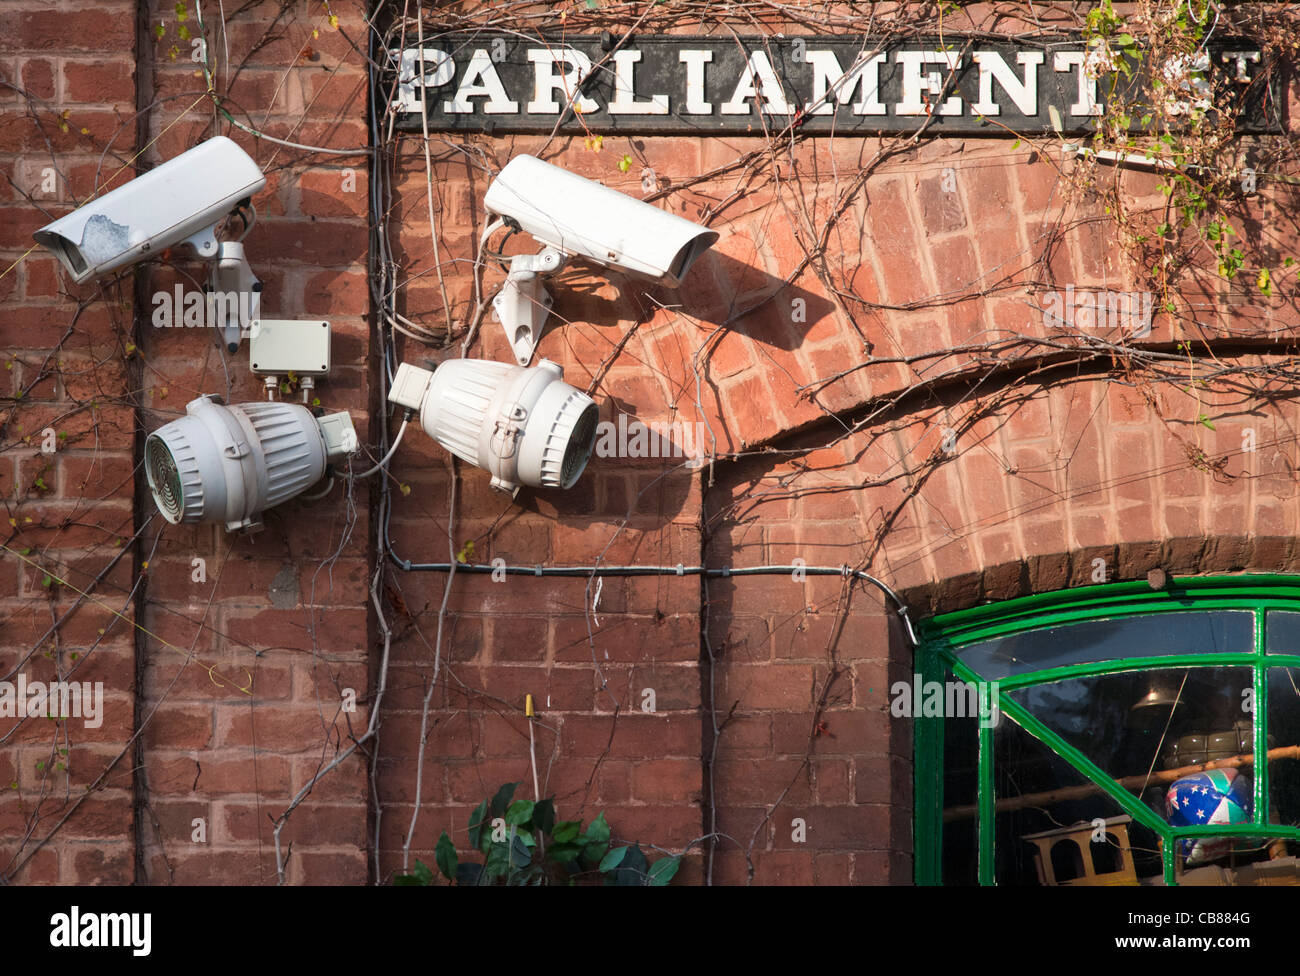 CCTV cameras and ironic street sign -Parliament Street - in Crediton, Devon, England - Stock Image